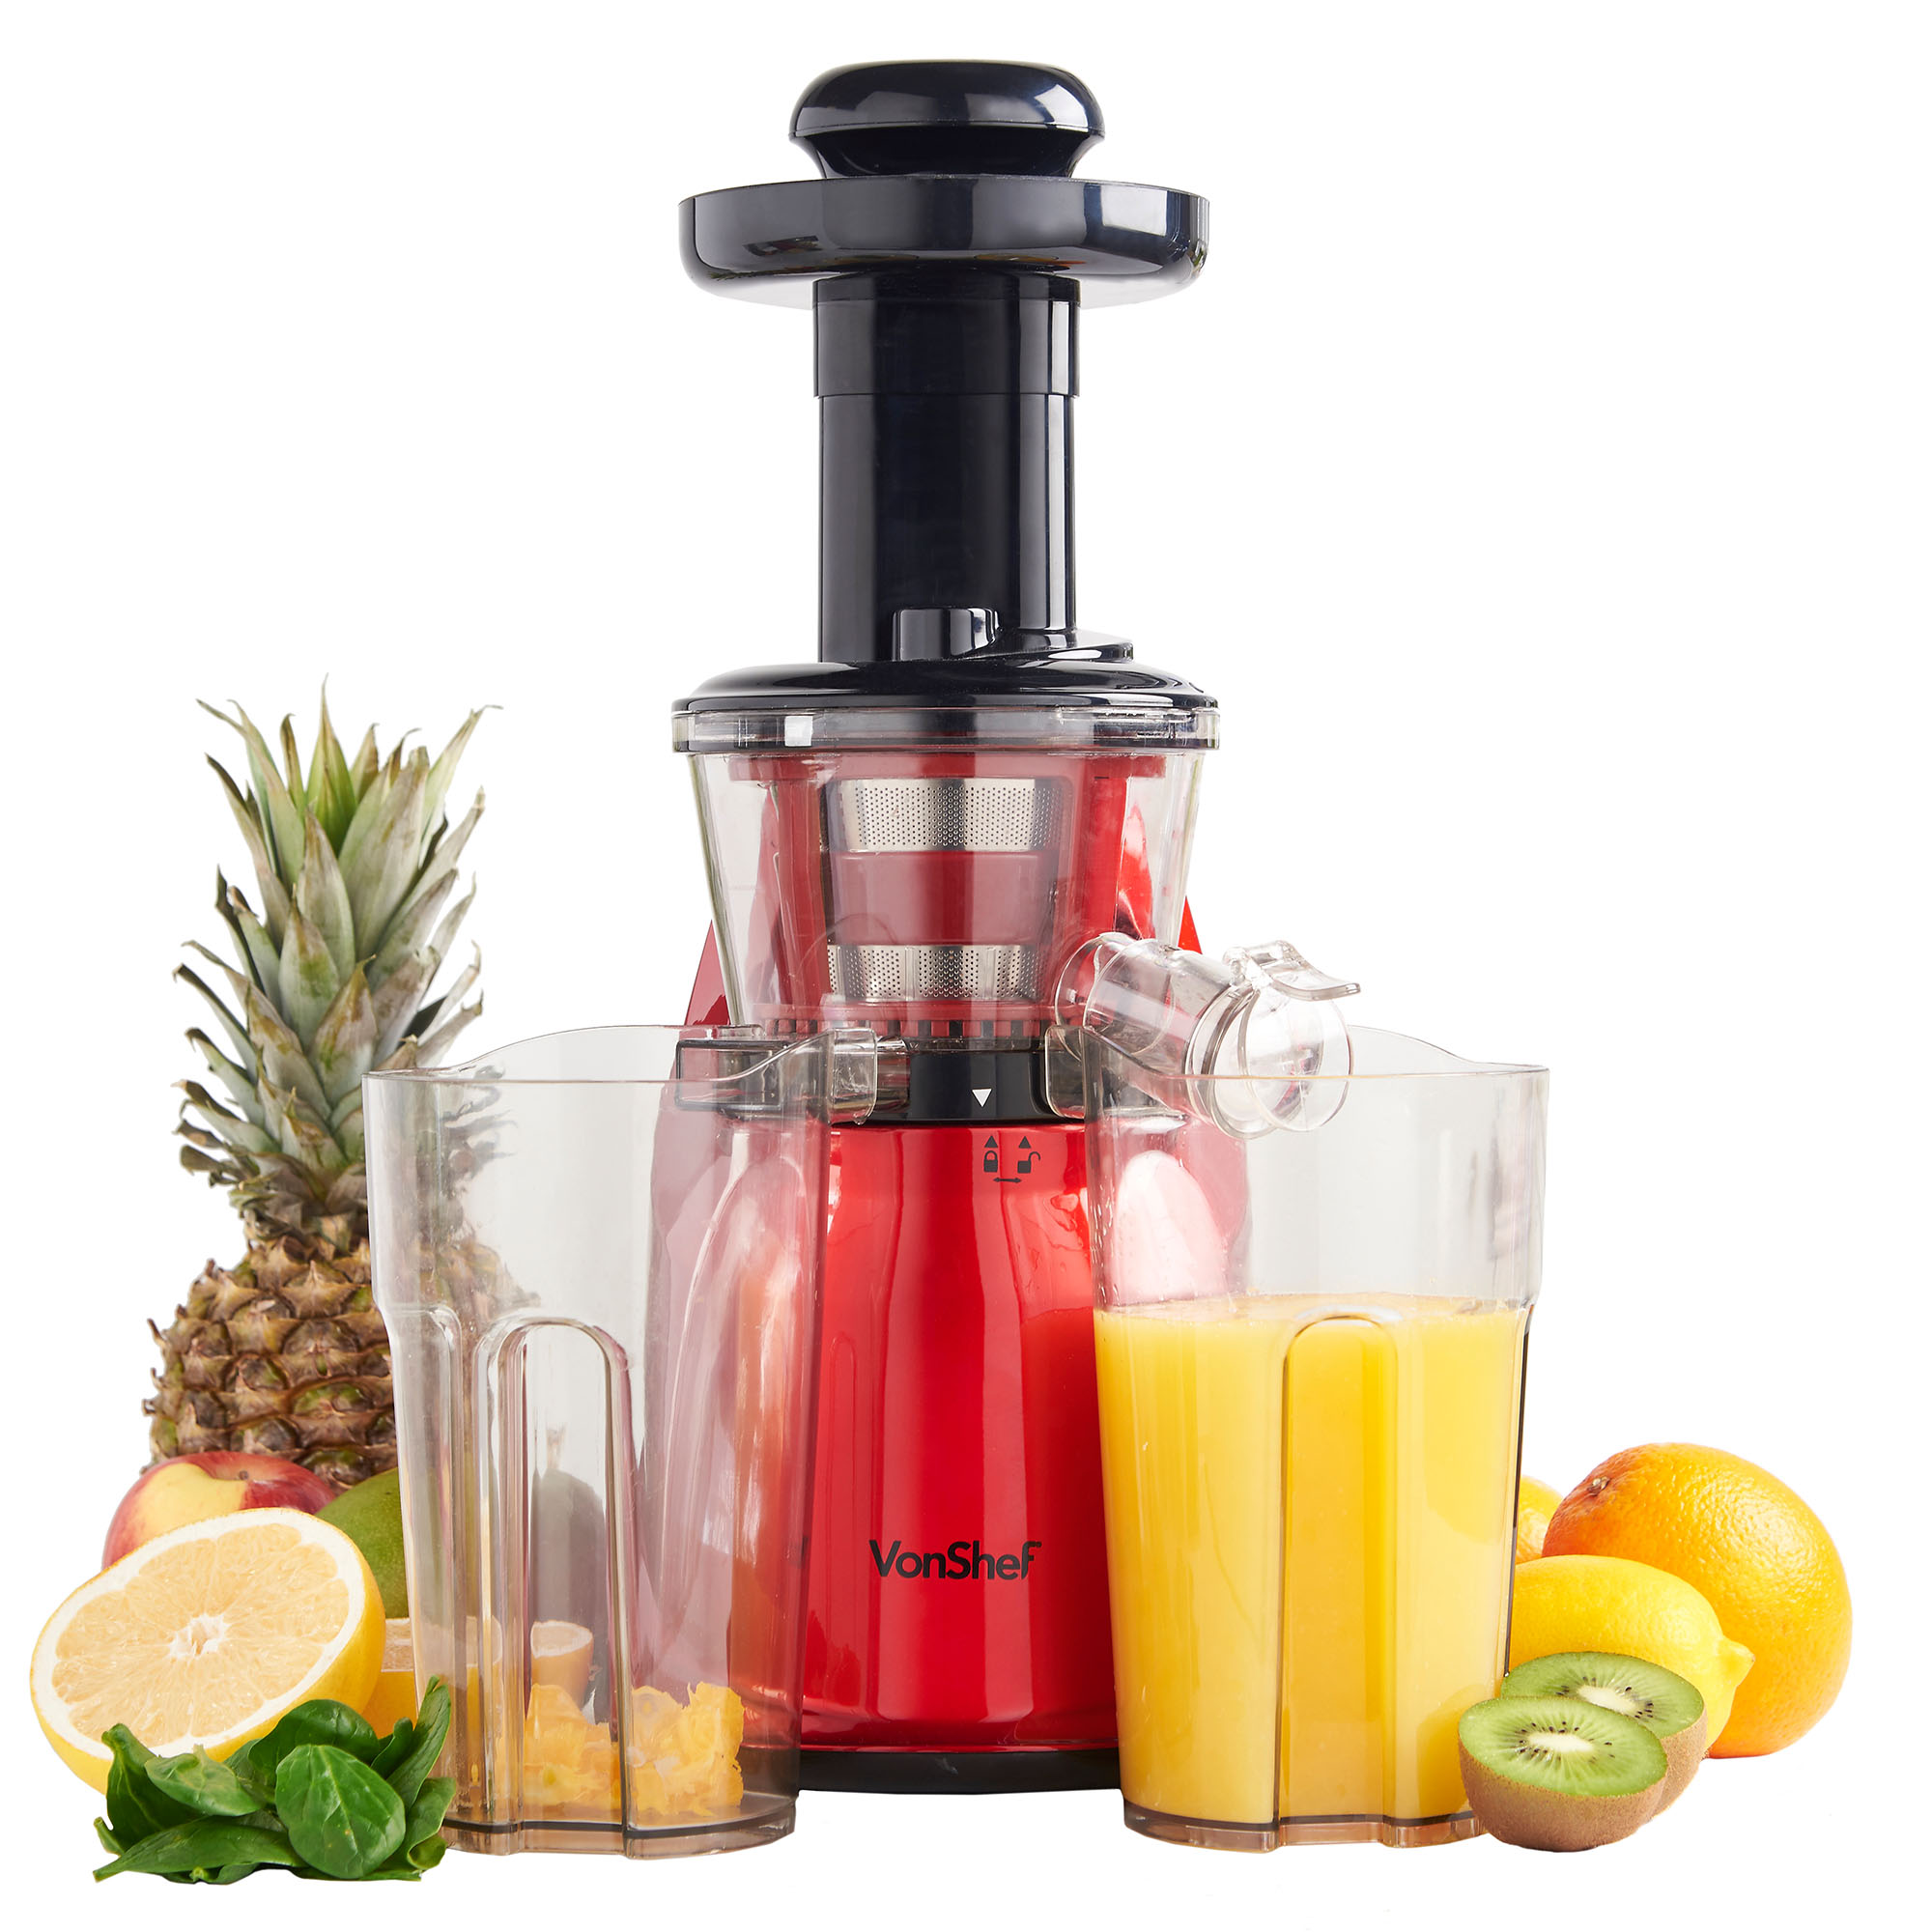 Kale Slow Juicer Recipe : vonShef Premium Slow Masticating Juicer Electric vegetable Juice Extractor - Red eBay